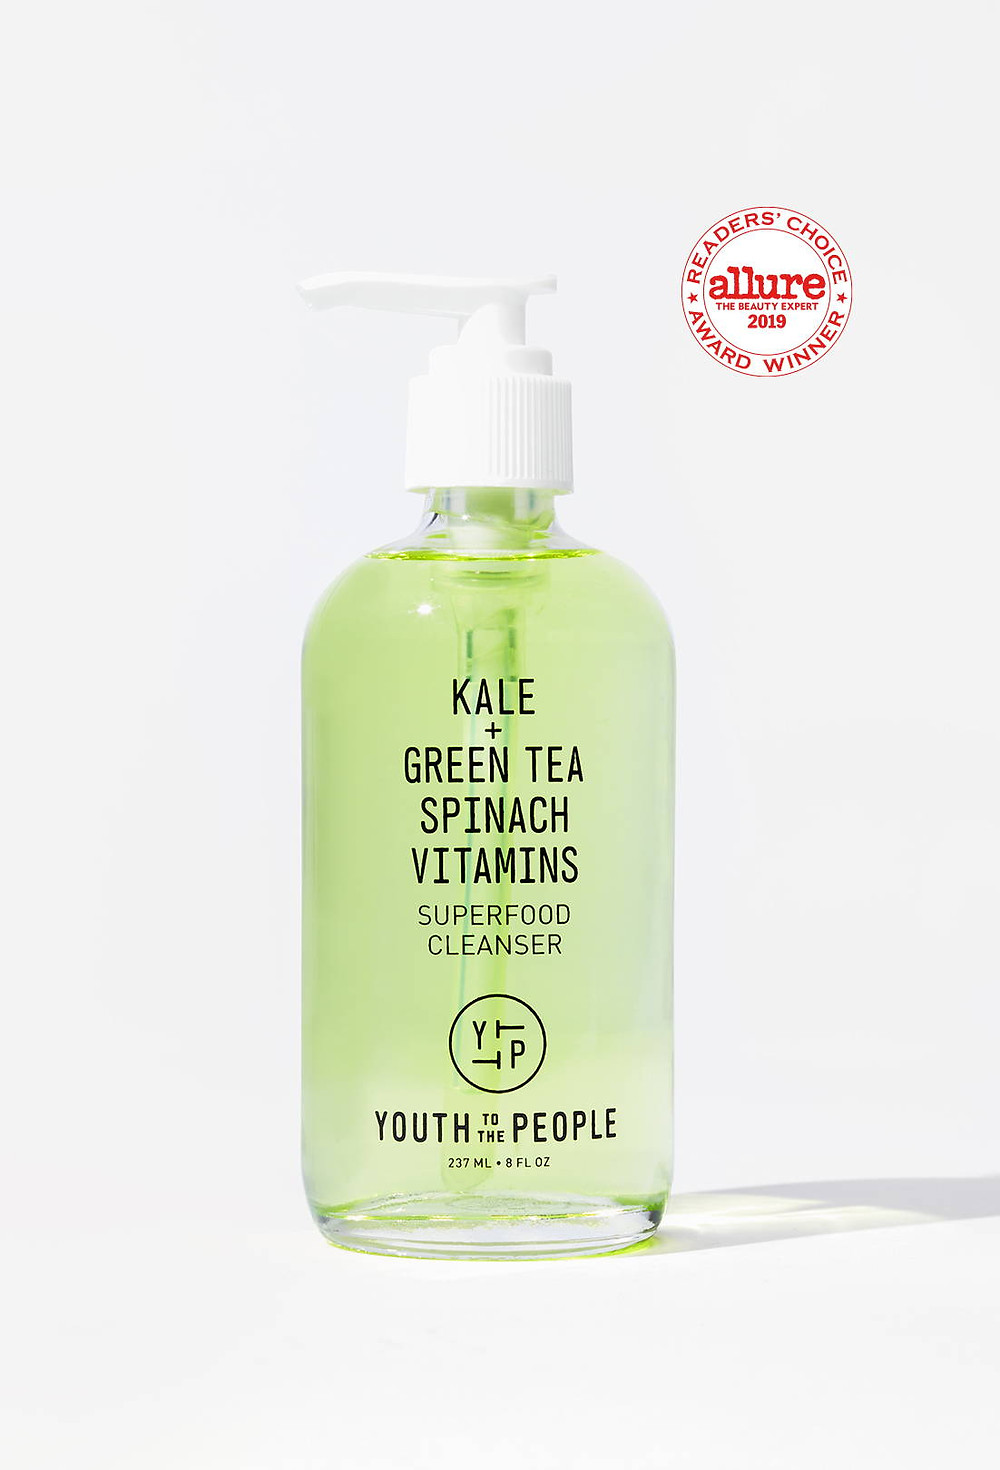 Youth to The People Superfood Face Wash image via Youth to the People Website